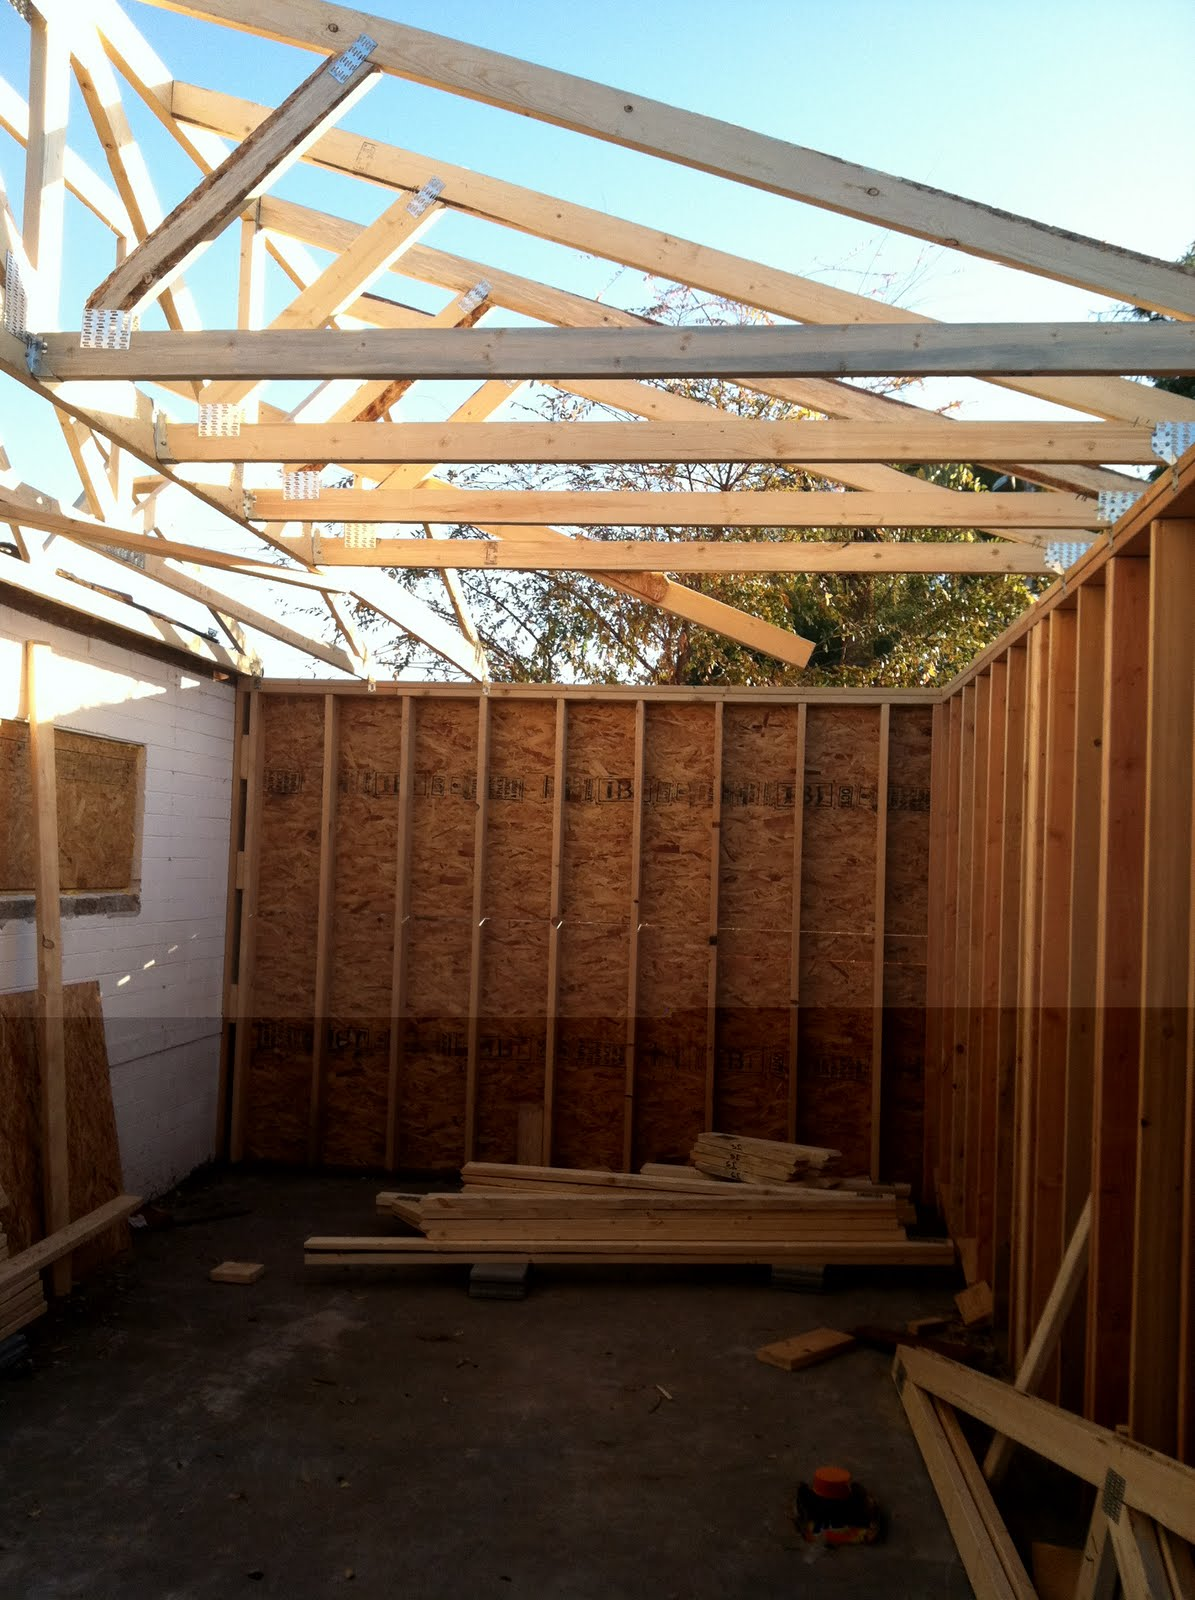 The Diy Bathroom Addition More Framing And Trusses